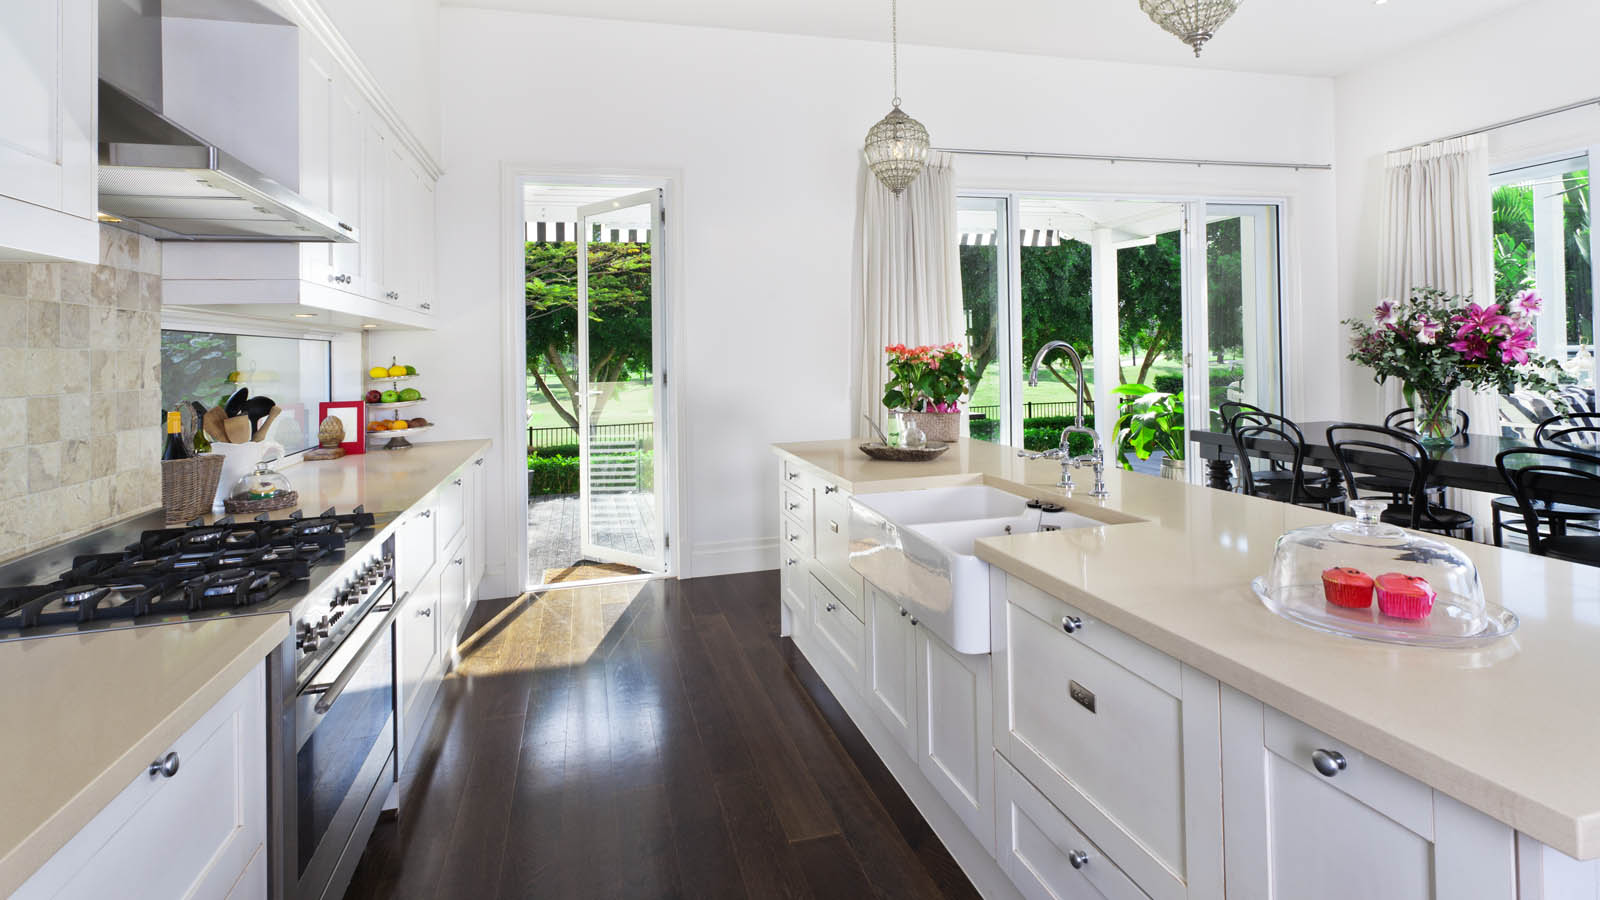 Stunning Beautiful Kitchens with White Cabinets 1600 x 900 · 186 kB · jpeg